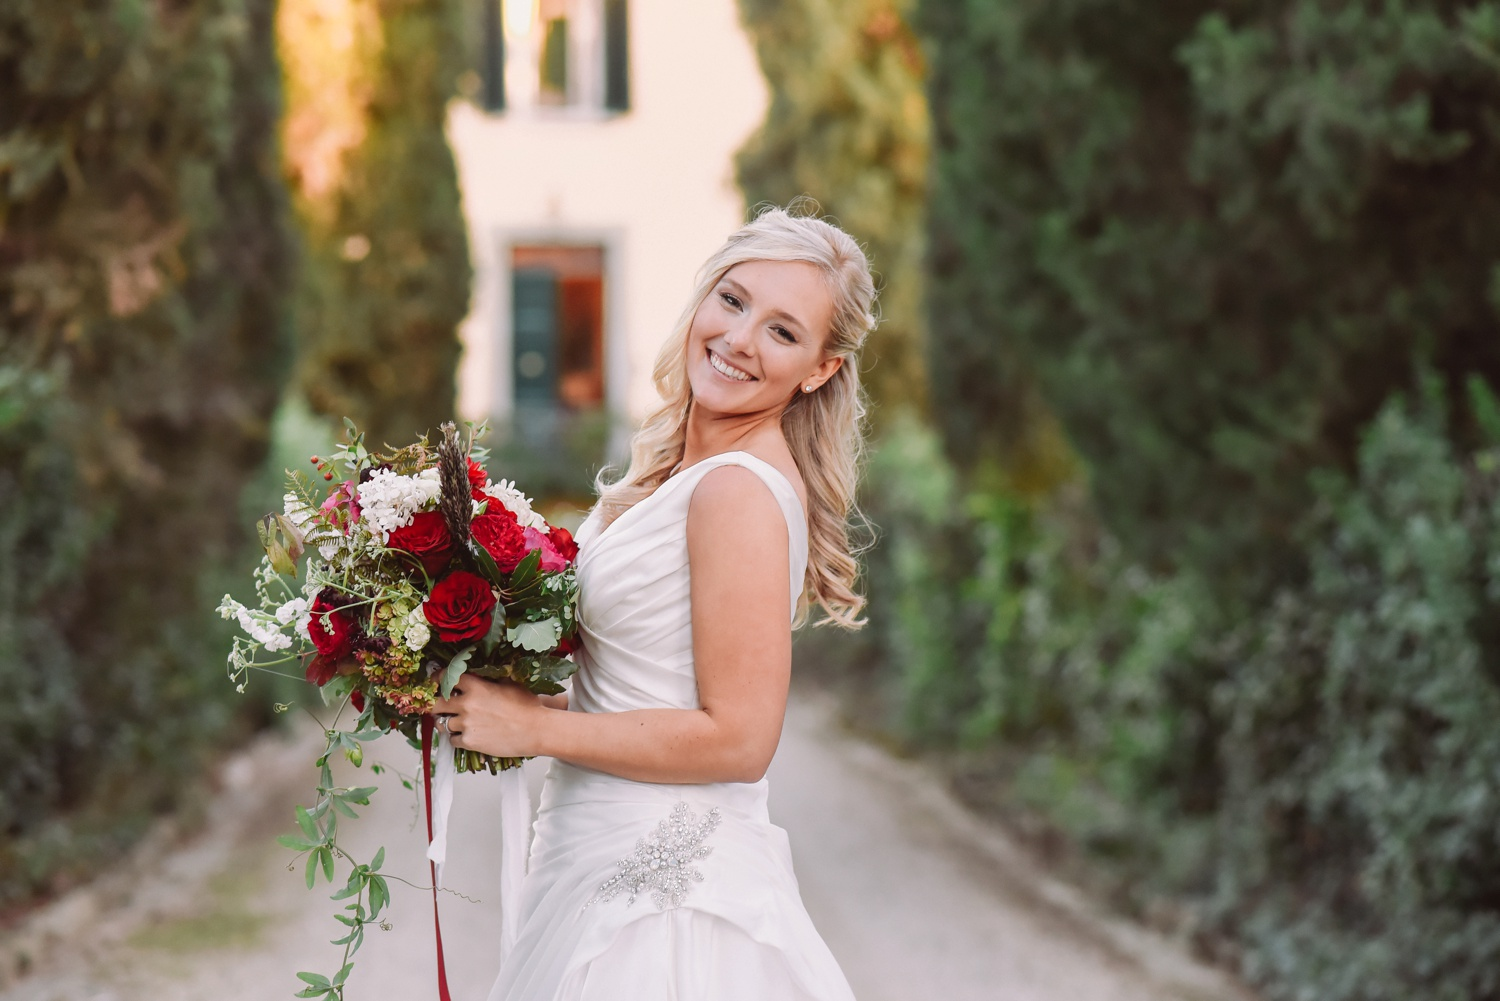 wedding-photographer-florence-fourseason-tuscany_1355.jpg